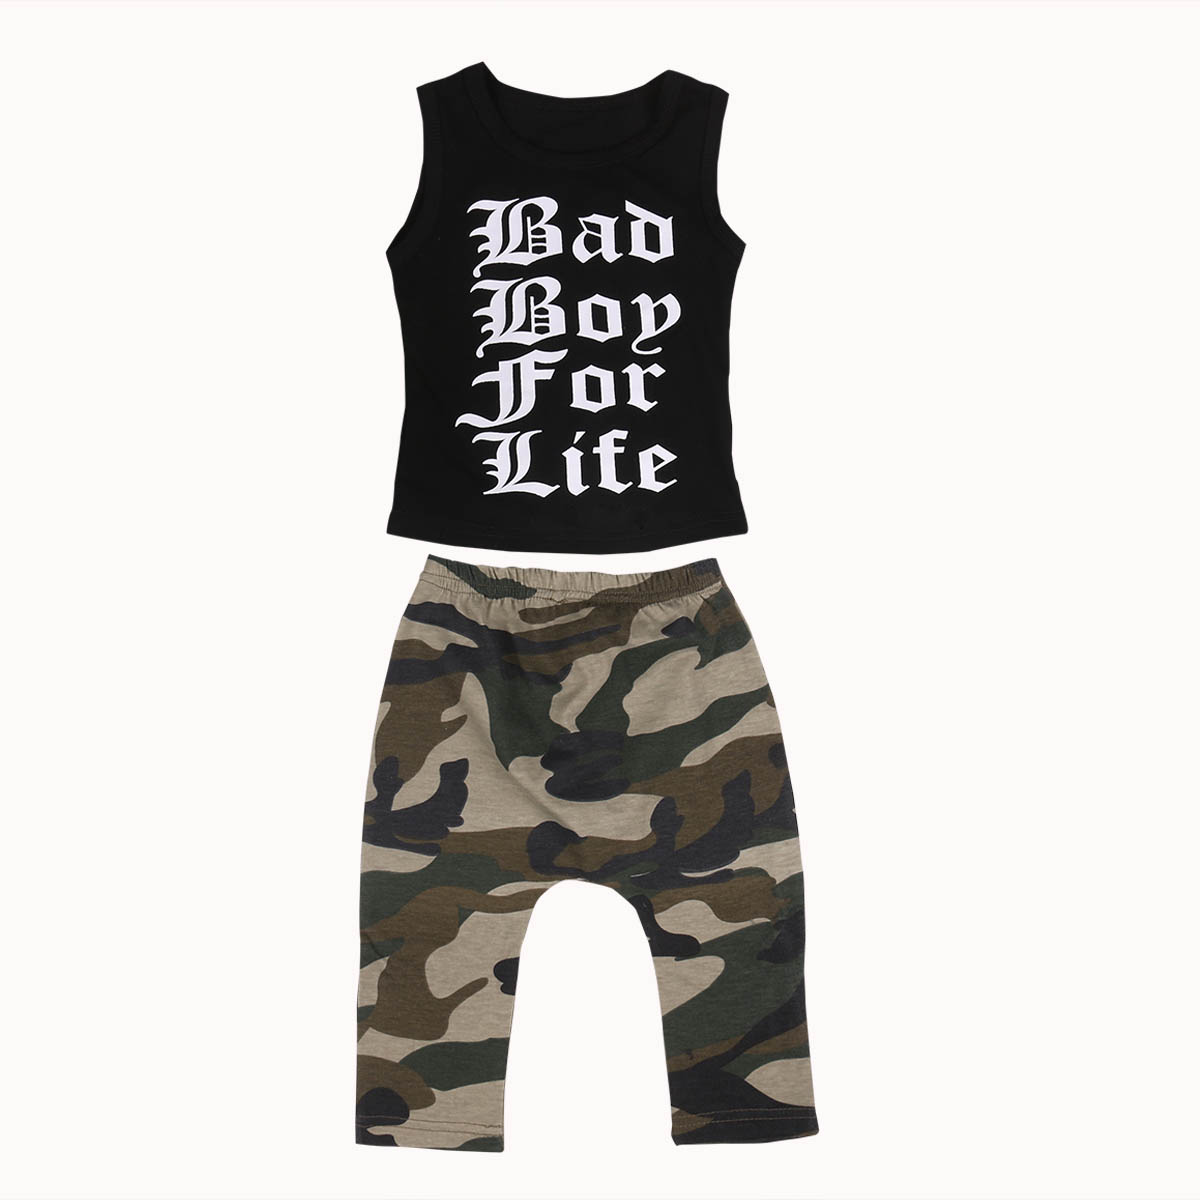 2017 Summer Kids Boy Clothing Set Sleeveless Letter Print Vest T-shirt Tops+Camouflage Pant 2PCS Children Clothes 0-4Y 2017 new fashion kids clothes off shoulder camo crop tops hole jean denim pant 2pcs outfit summer suit children clothing set